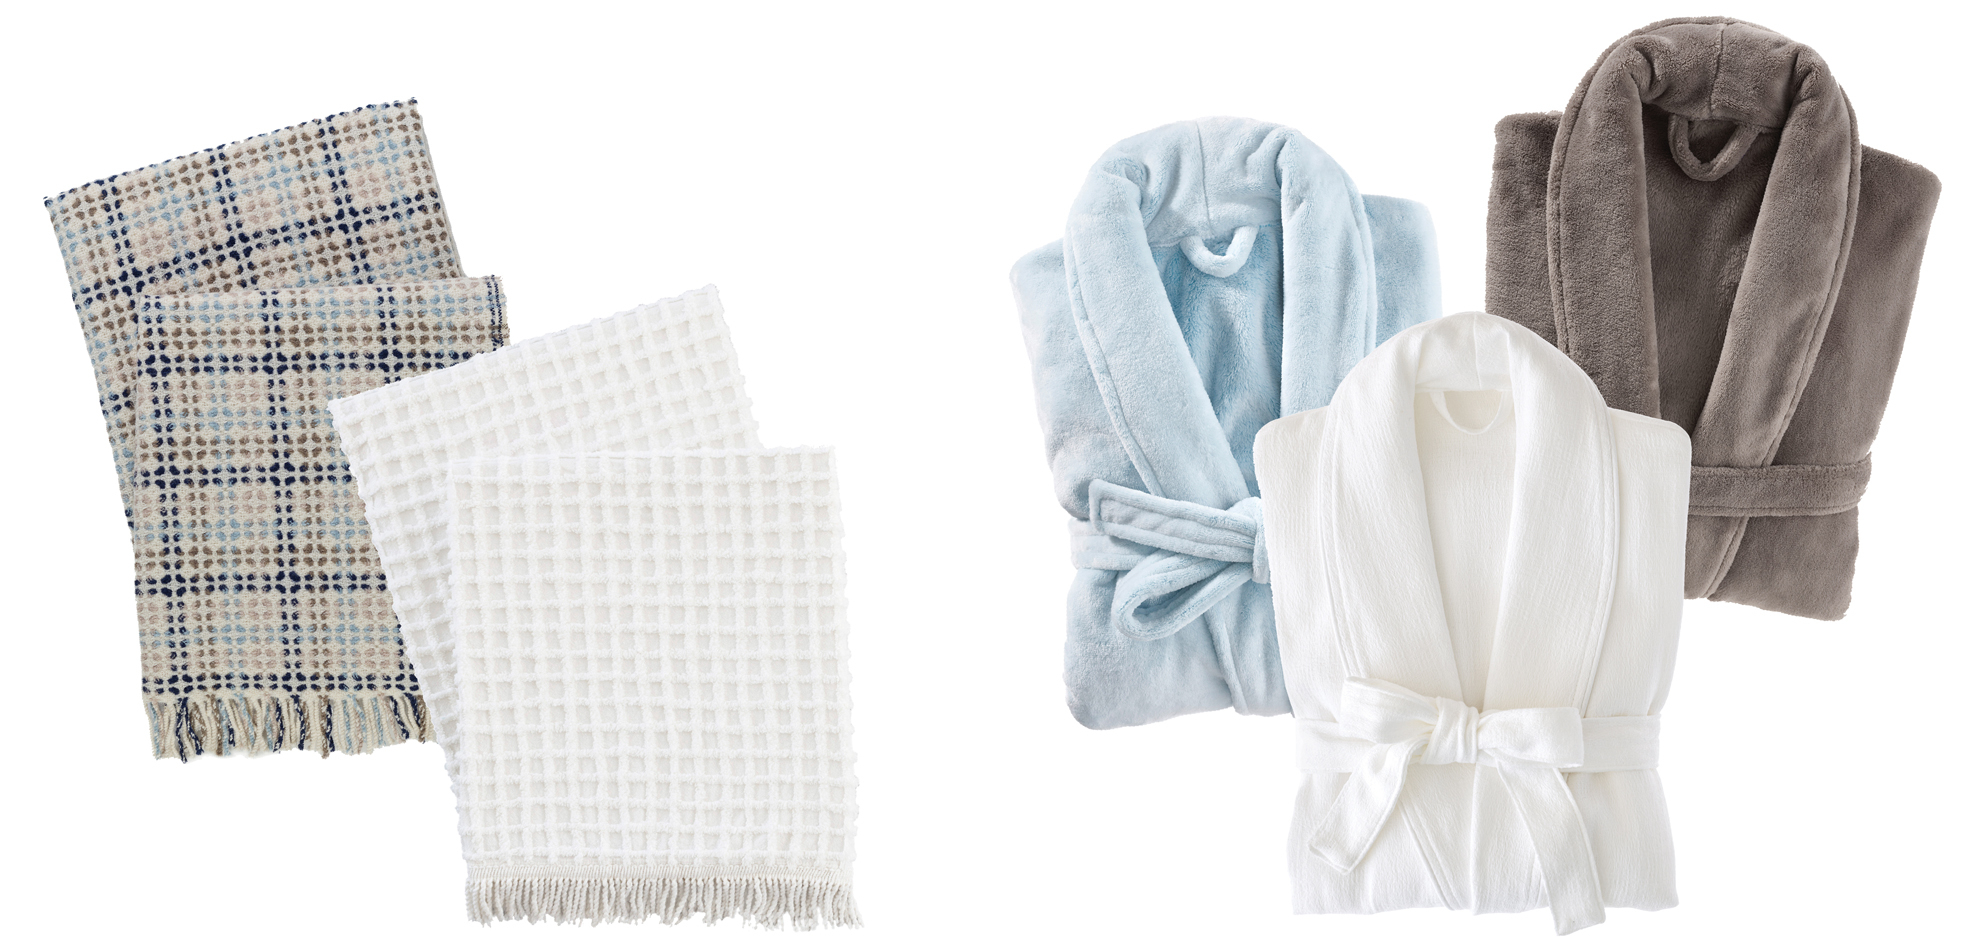 Shop Pillows, Sheets, and Throws